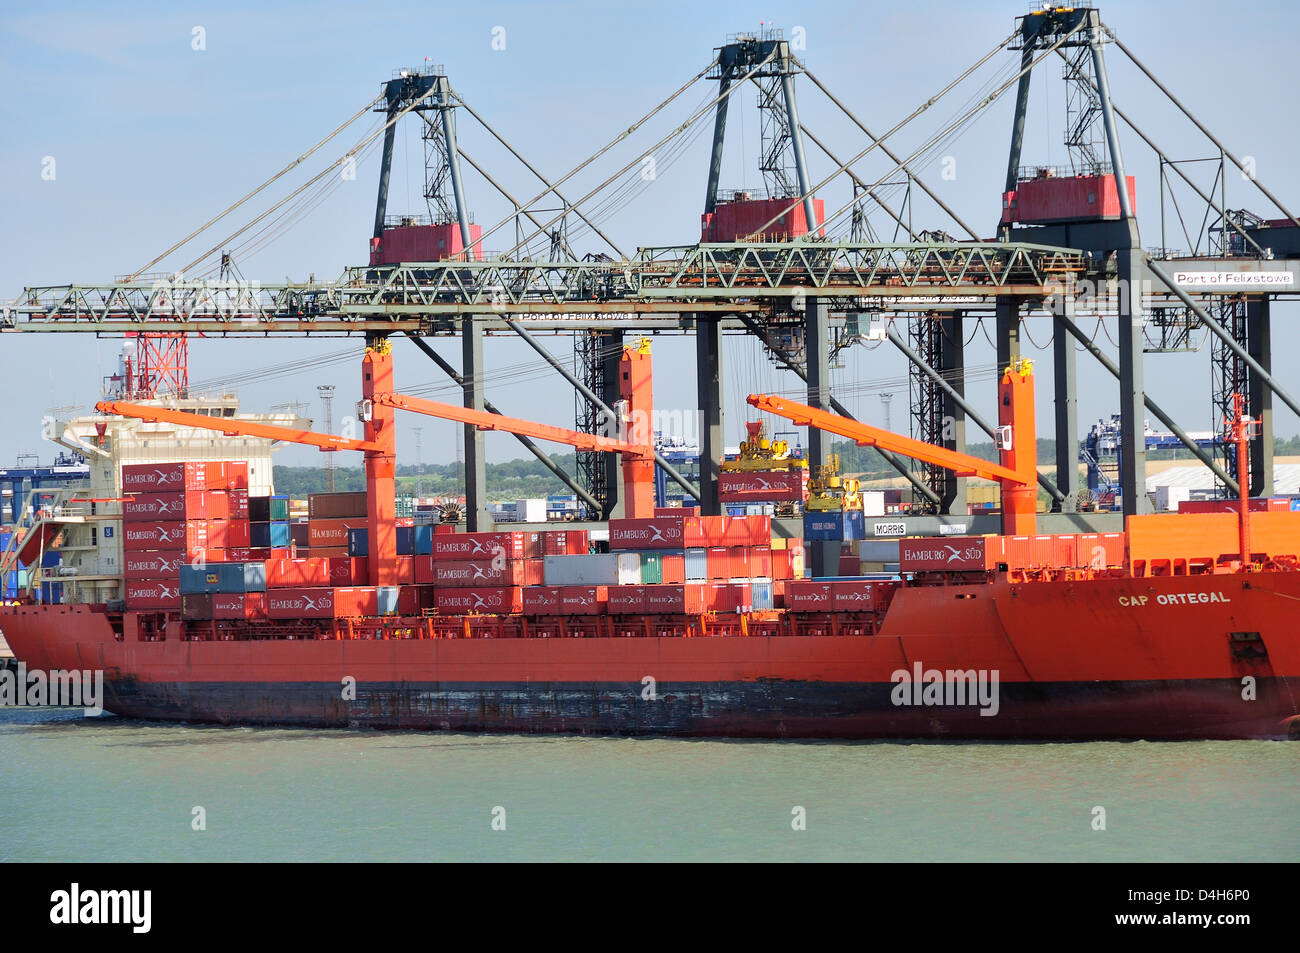 Container being loaded onto container ship by loading derrick at Felixstowe Docks, Suffolk, England, UK - Stock Image